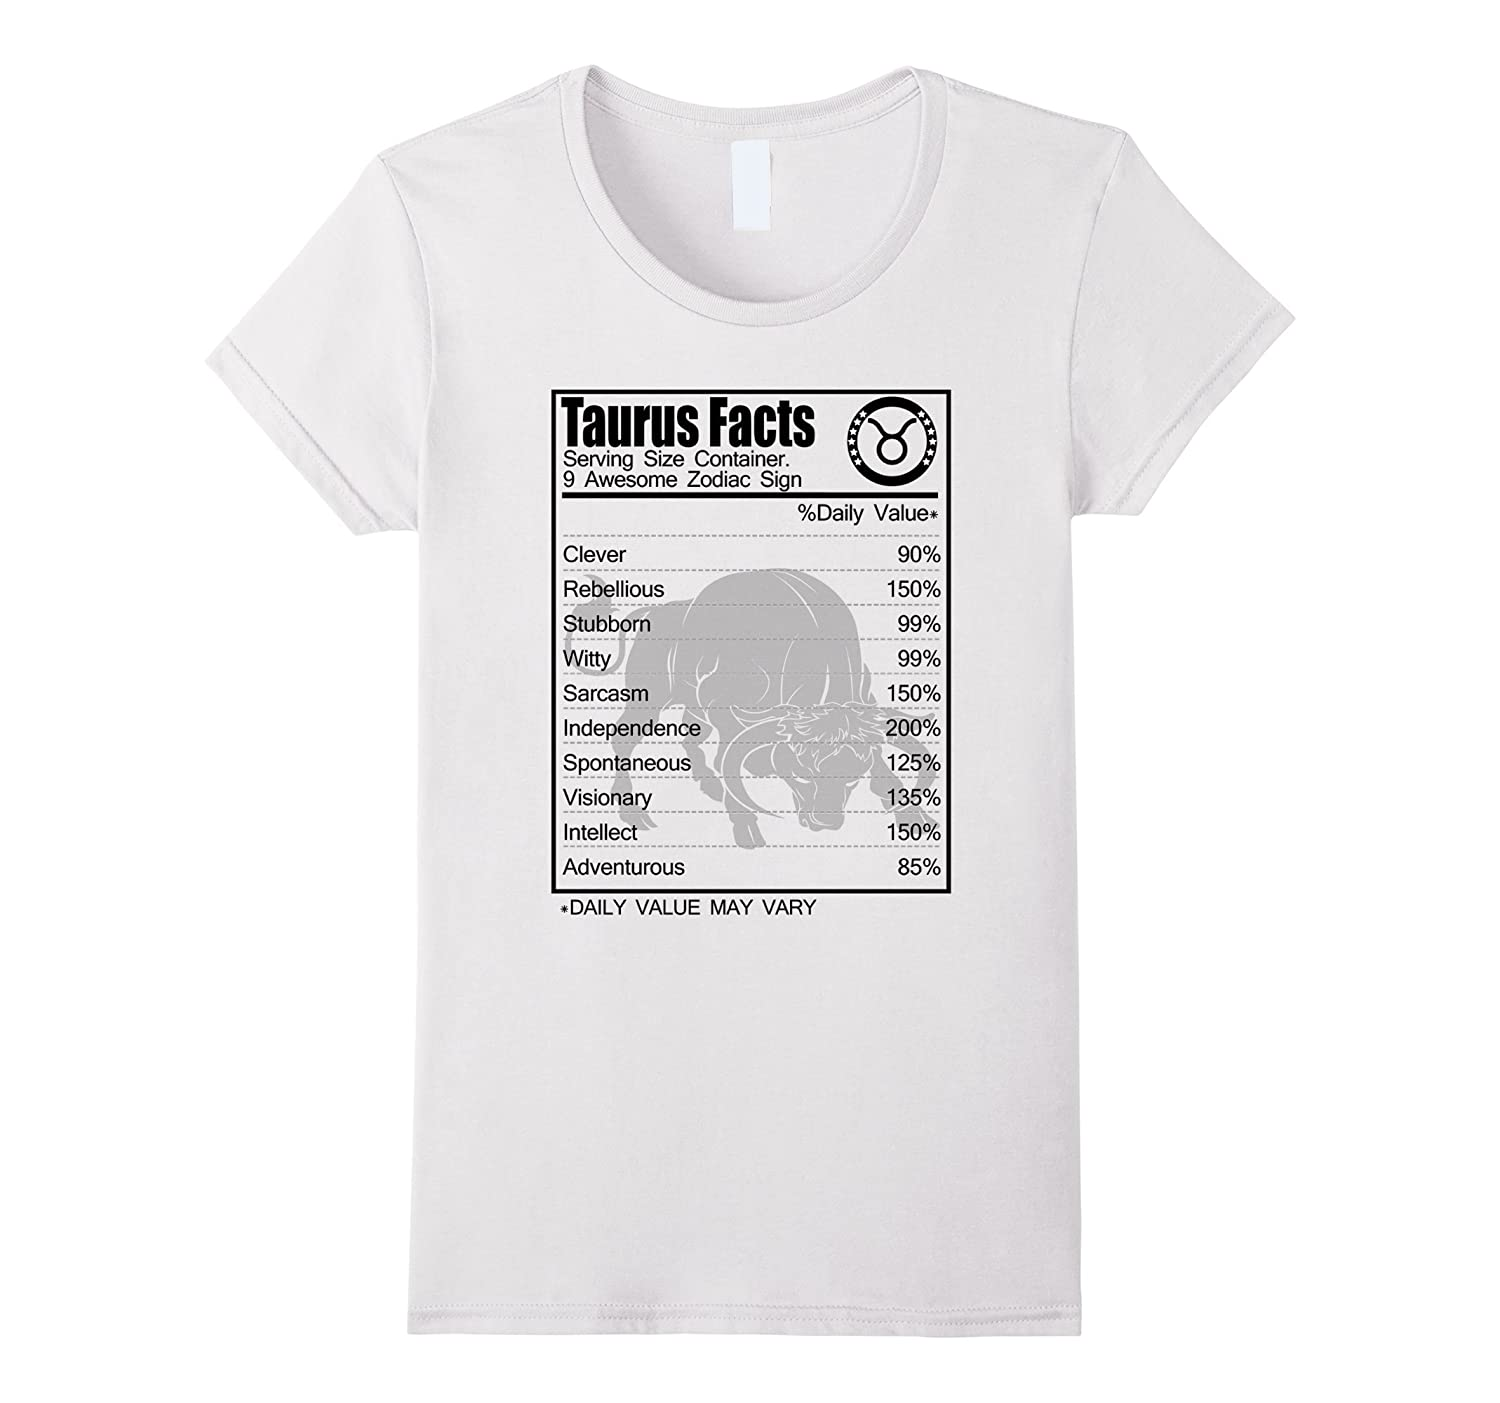 Taurus Facts Awesome Zodiac T-shirt Clever Rebellious-Teevkd